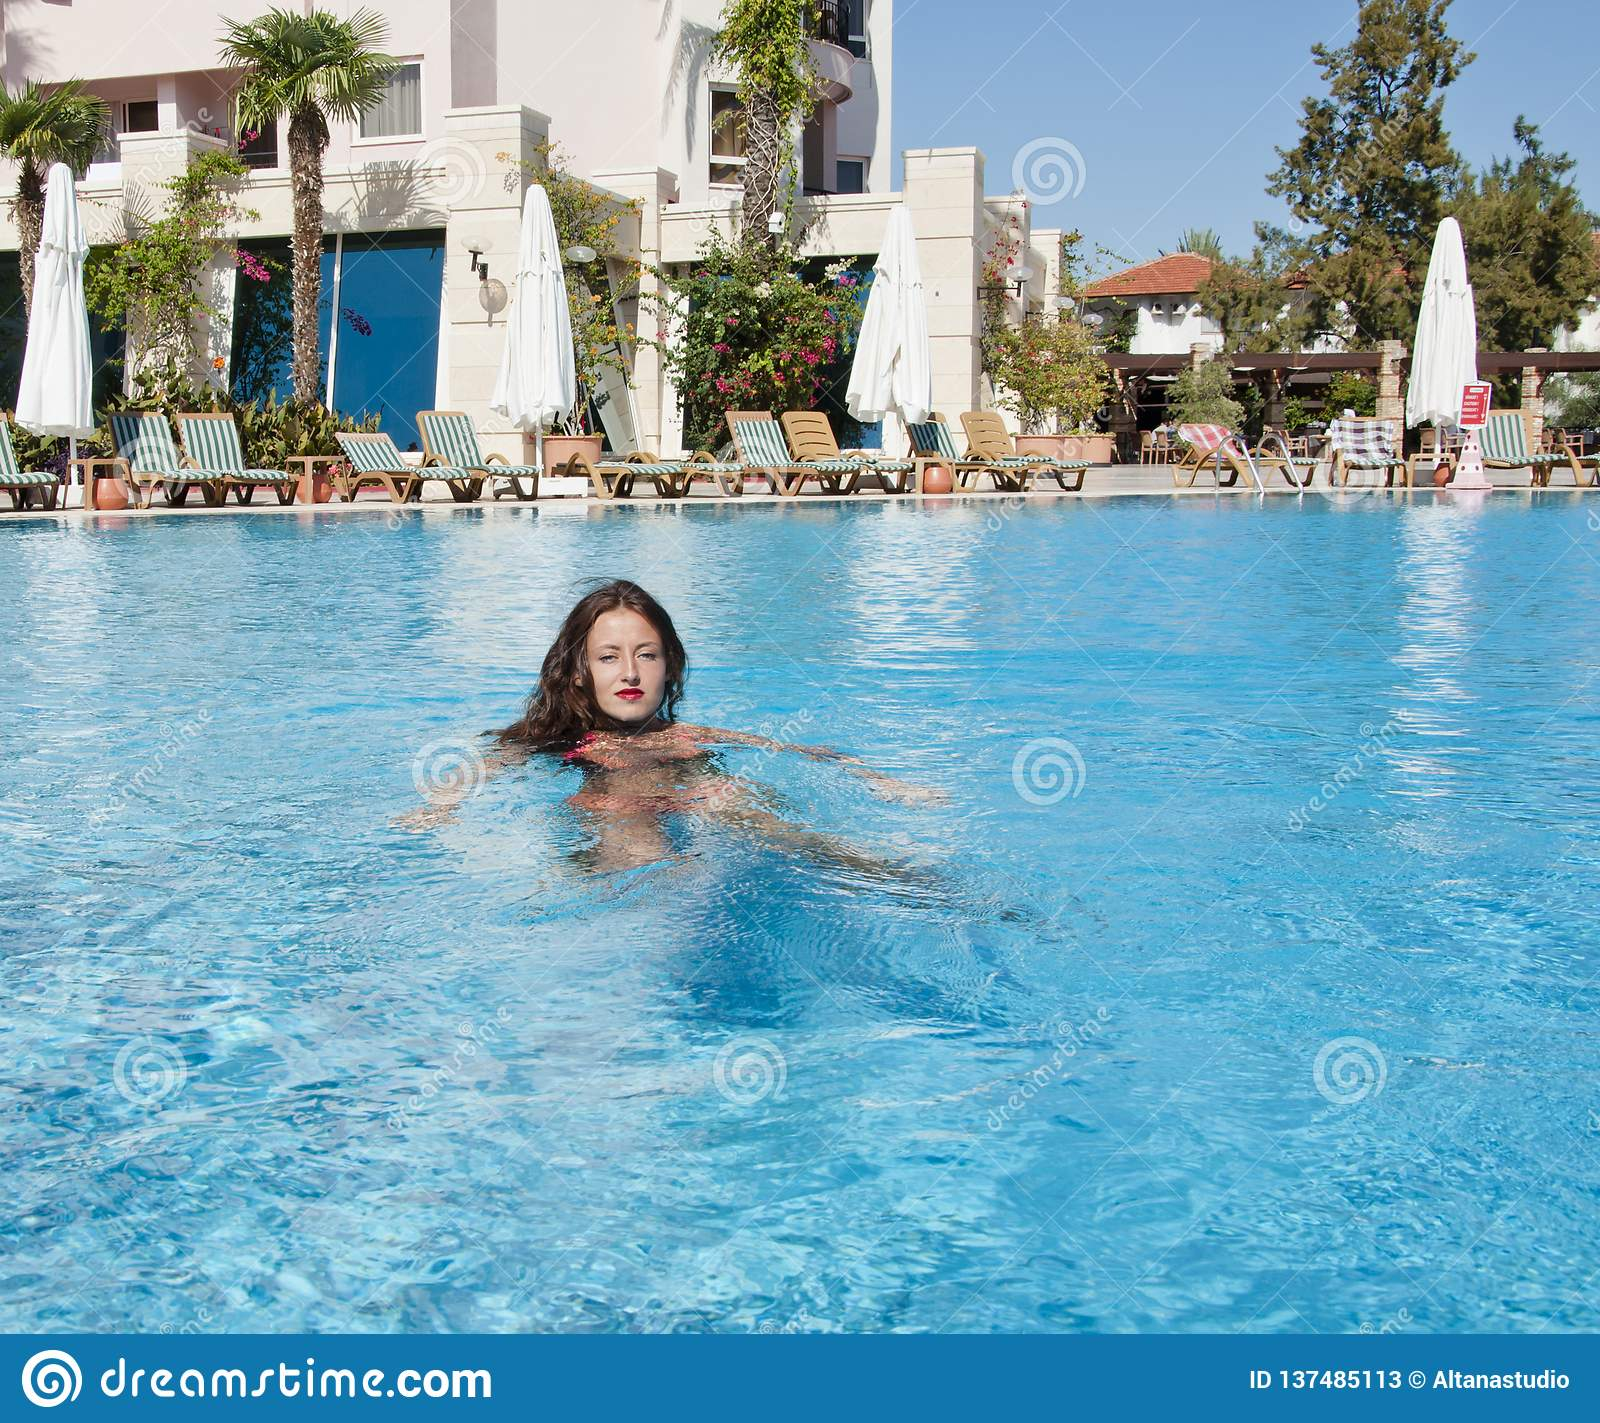 Caribbean sea. Dope. Spa in pool. Miami beach is sunny. Swag. girl with red lips and wet hair. woman in swimming pool.